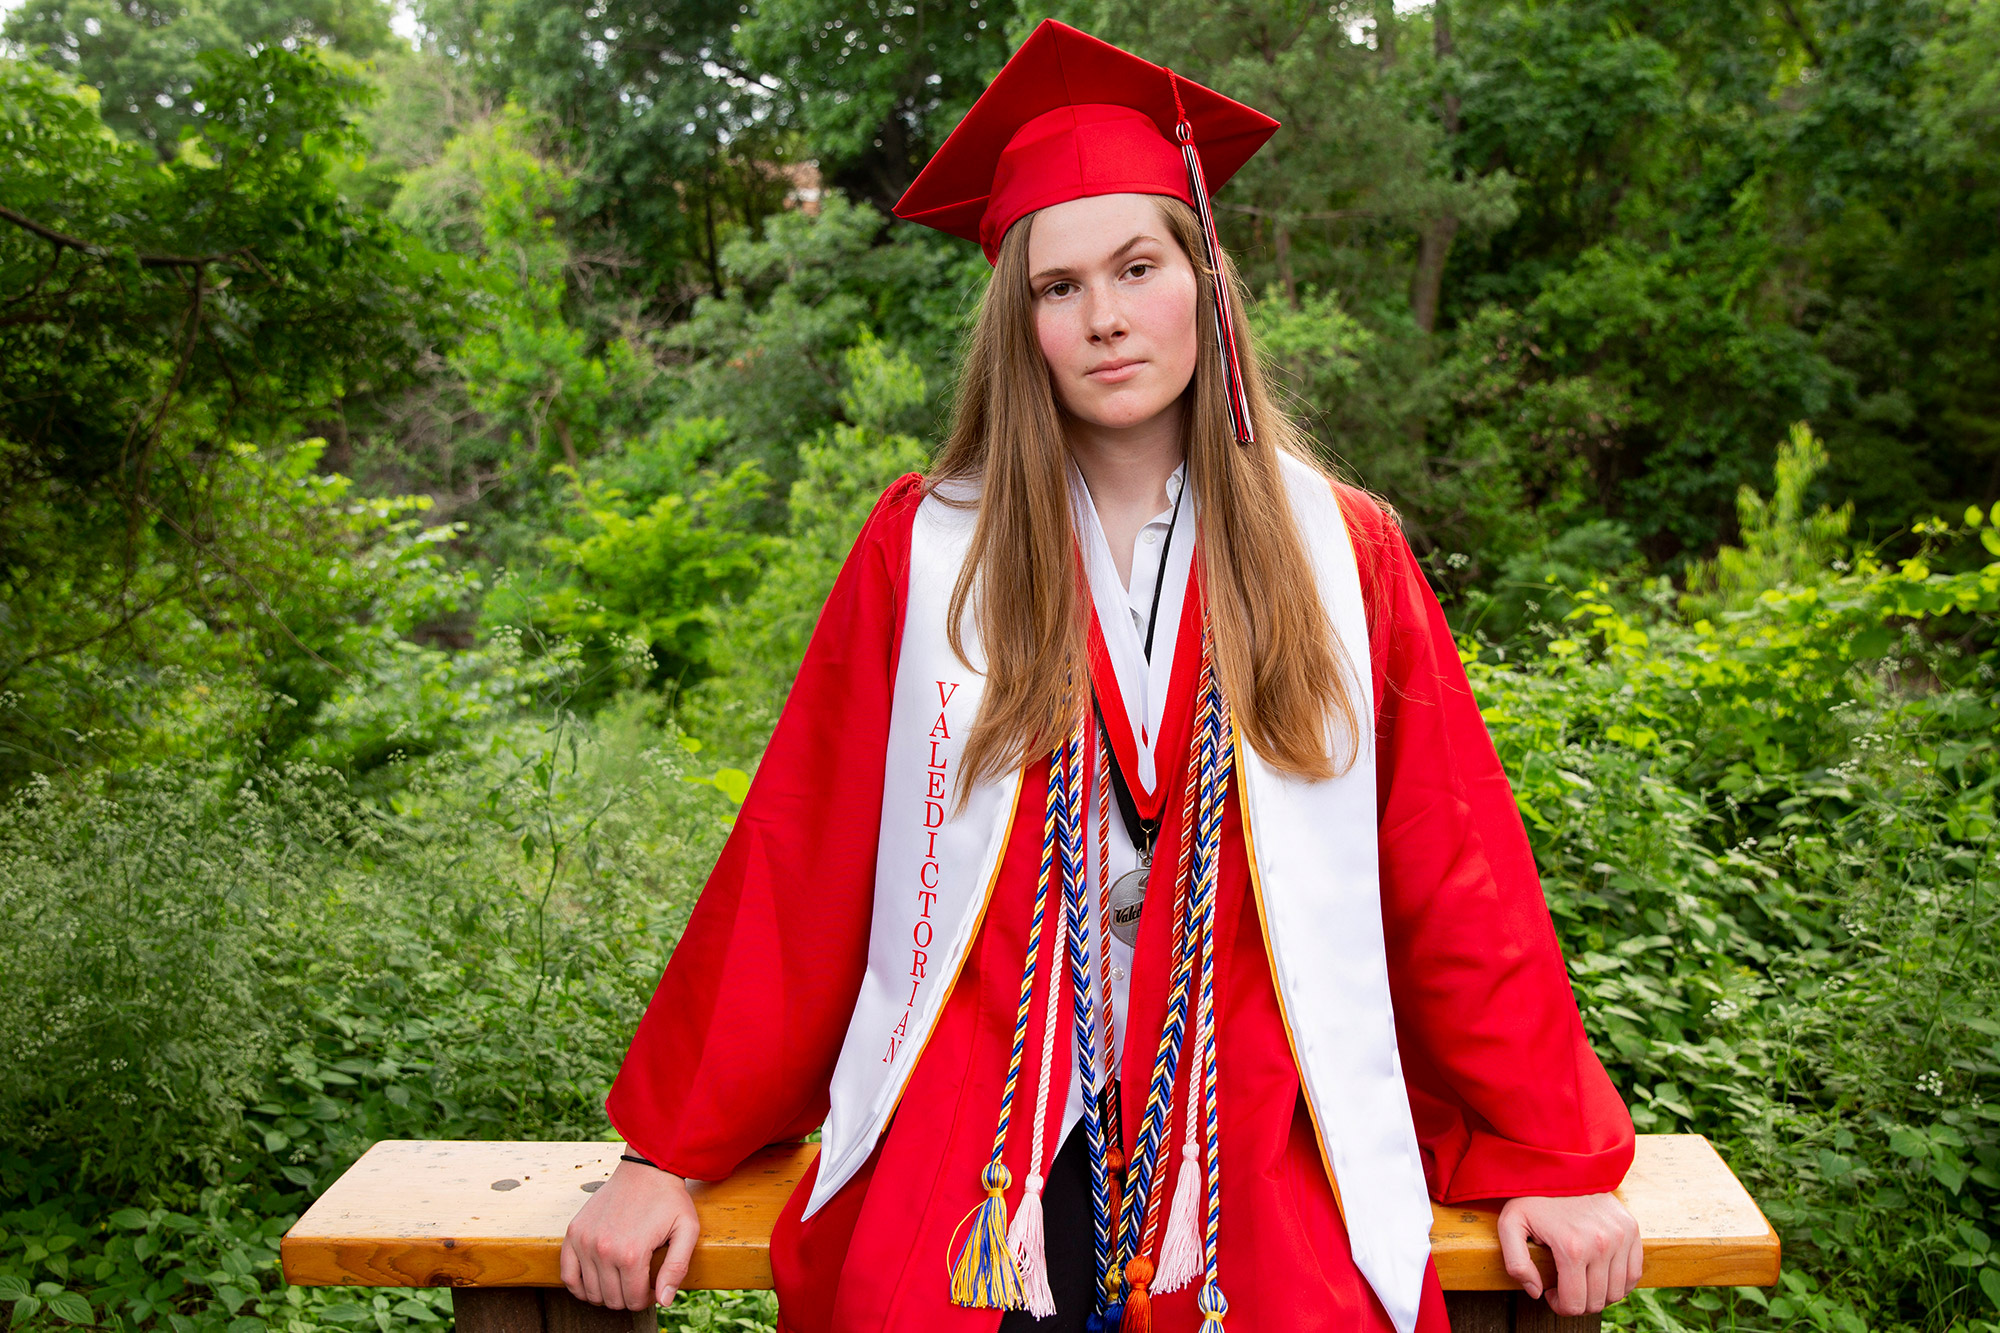 Paxton Smith, Lake Highlands High School valedictorian, poses for a photo, Wednesday, June 2, 2021, in Dallas